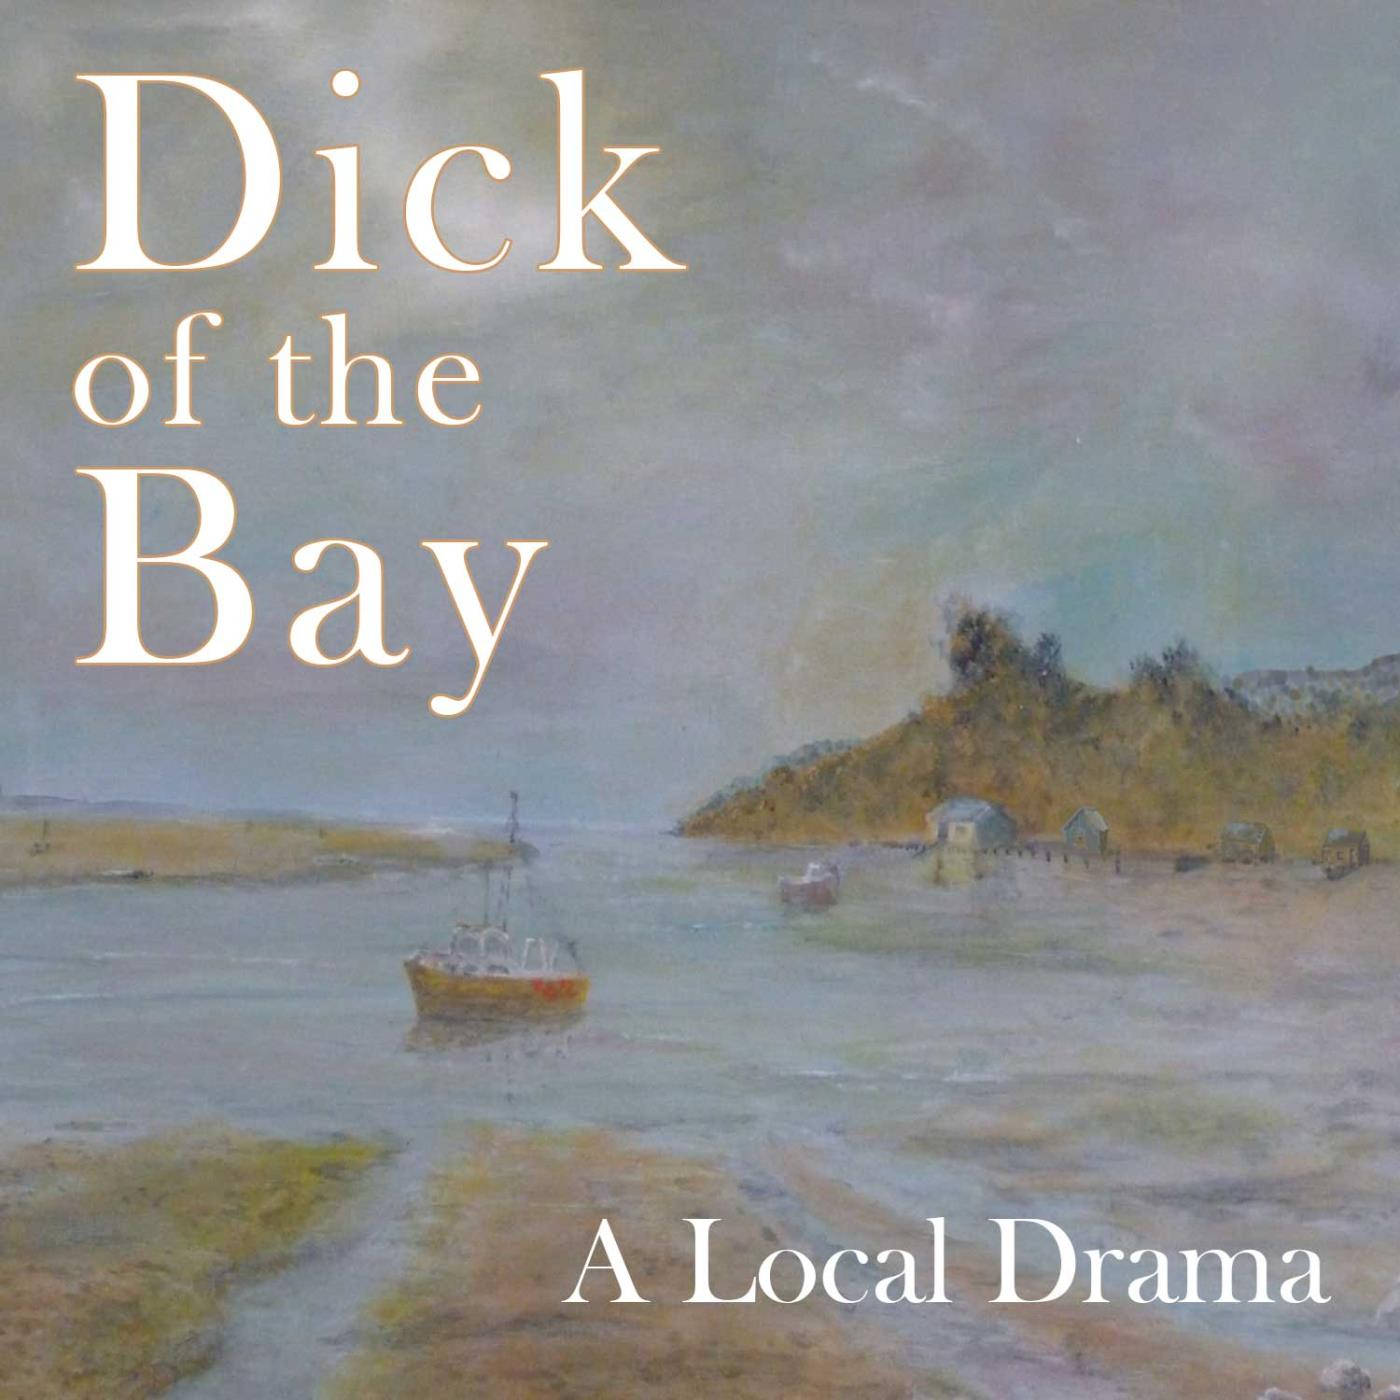 Dick of the Bay - 25-10-2020 - Show 06